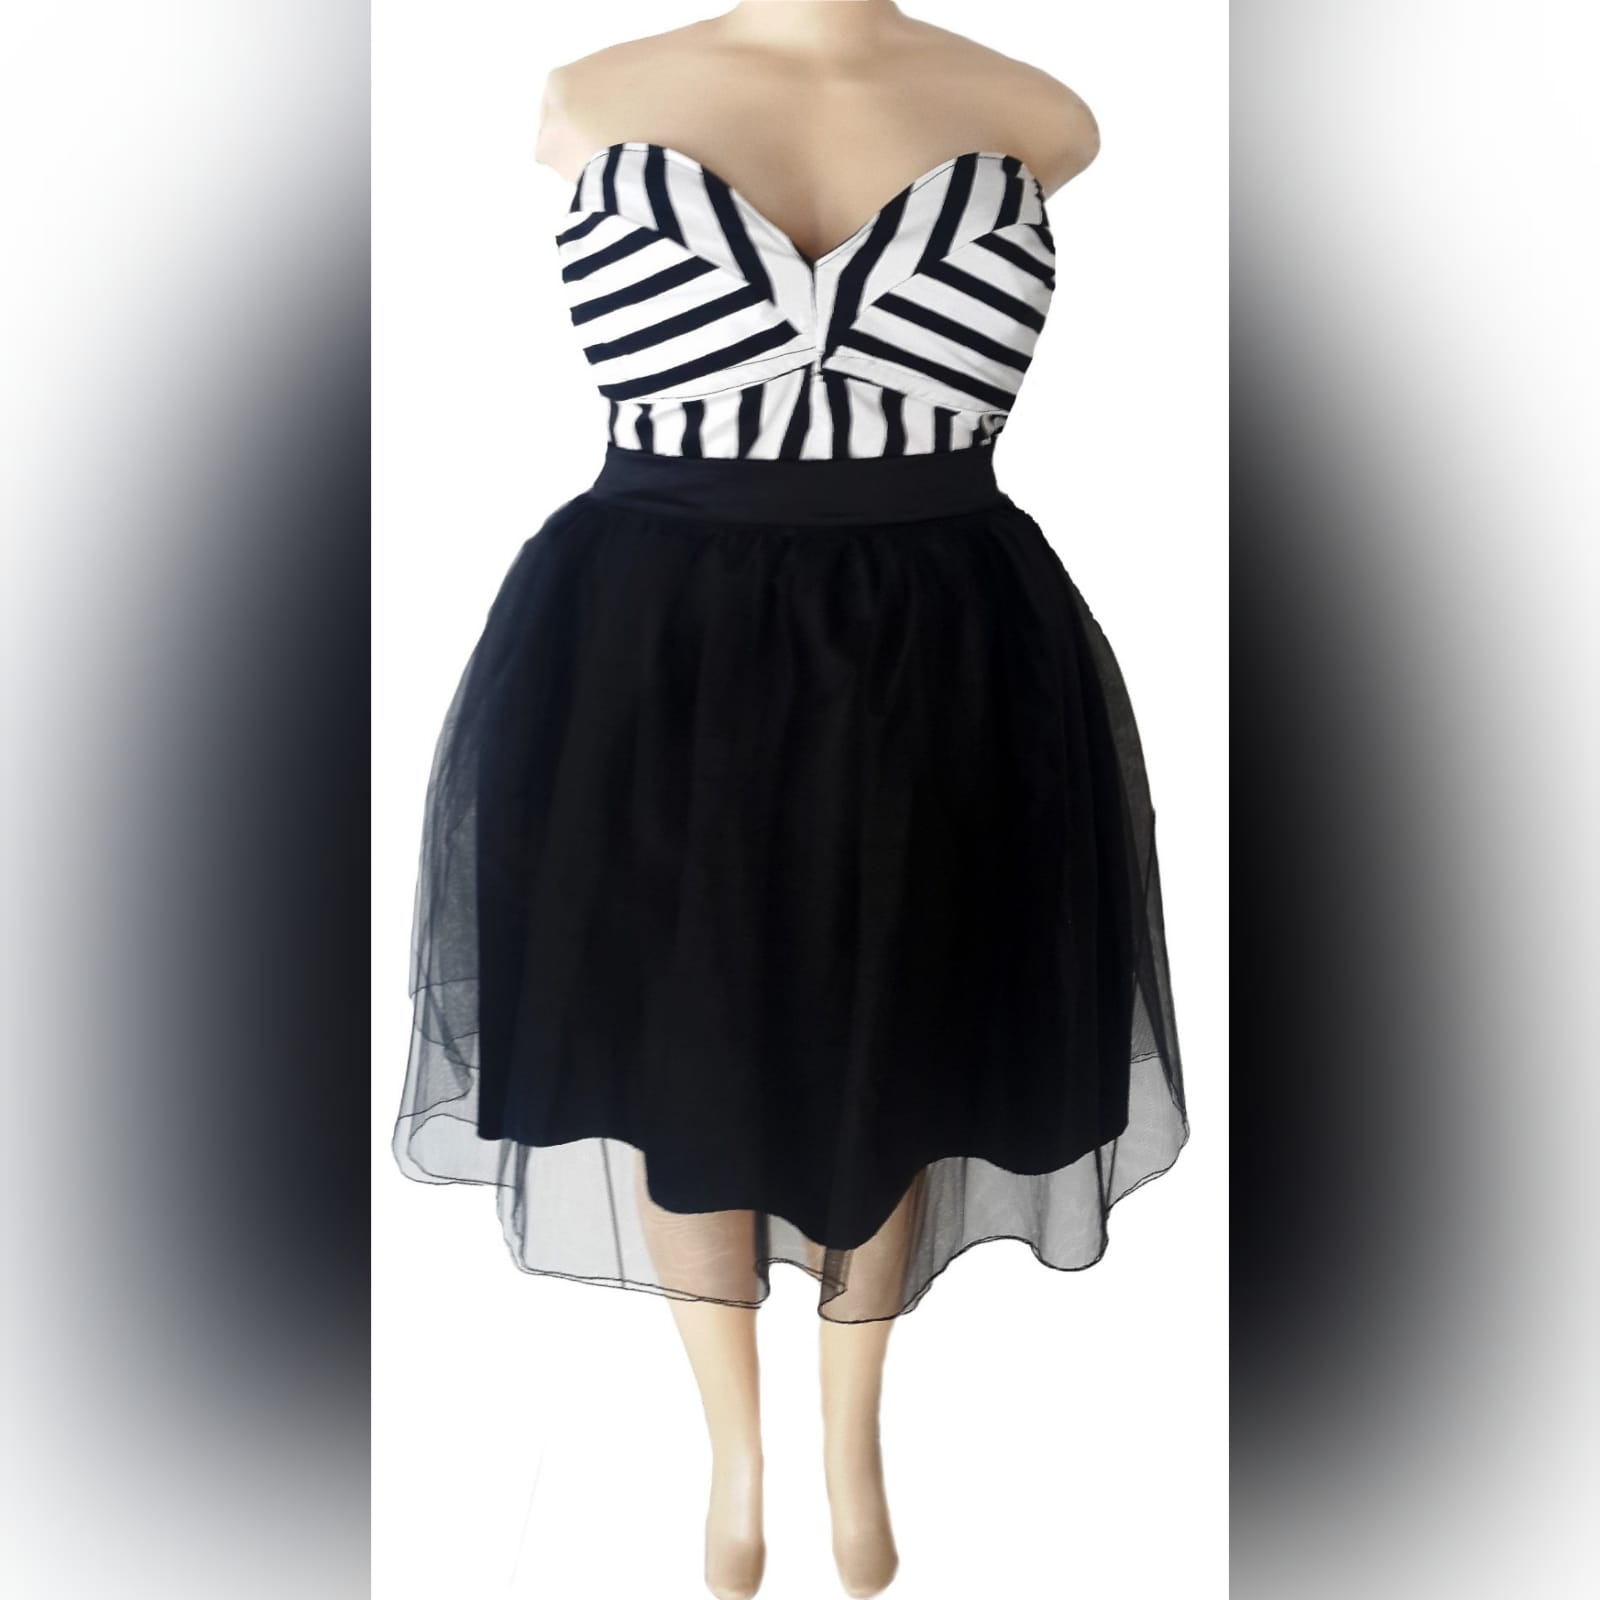 Black and white boob tube tutu smart casual dress 3 black and white boob tube tutu smart casual dress, under the knee length with a striped bodice.